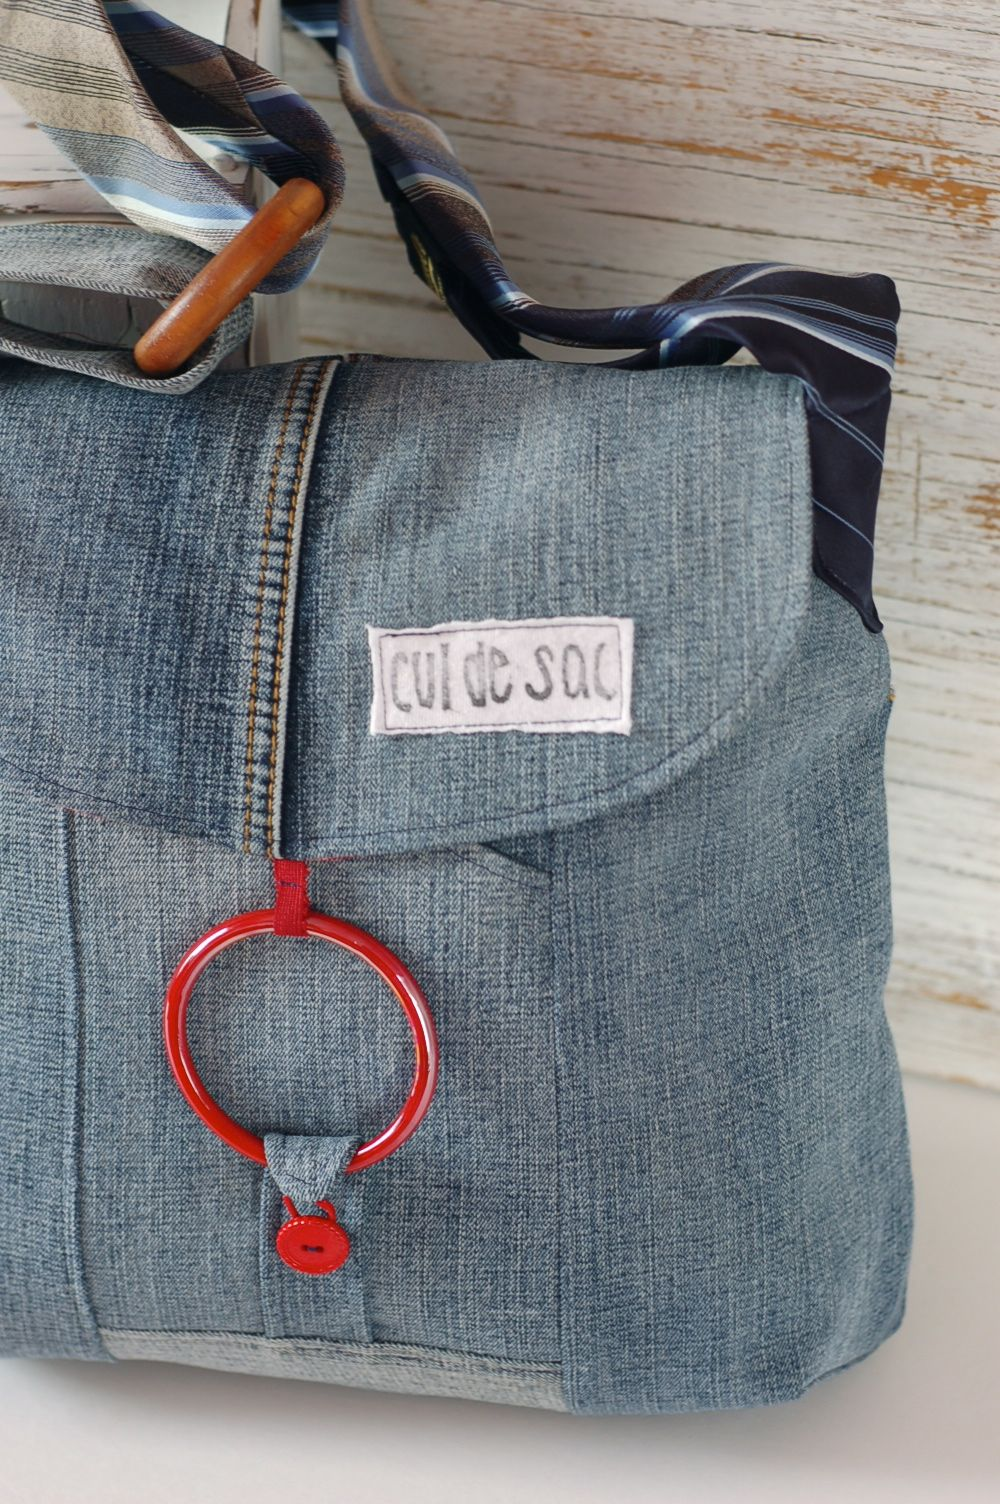 And From Cul FriendlyMade Reclaimed By Sac100Eco Bag De Pigeon Tl1uKF3Jc